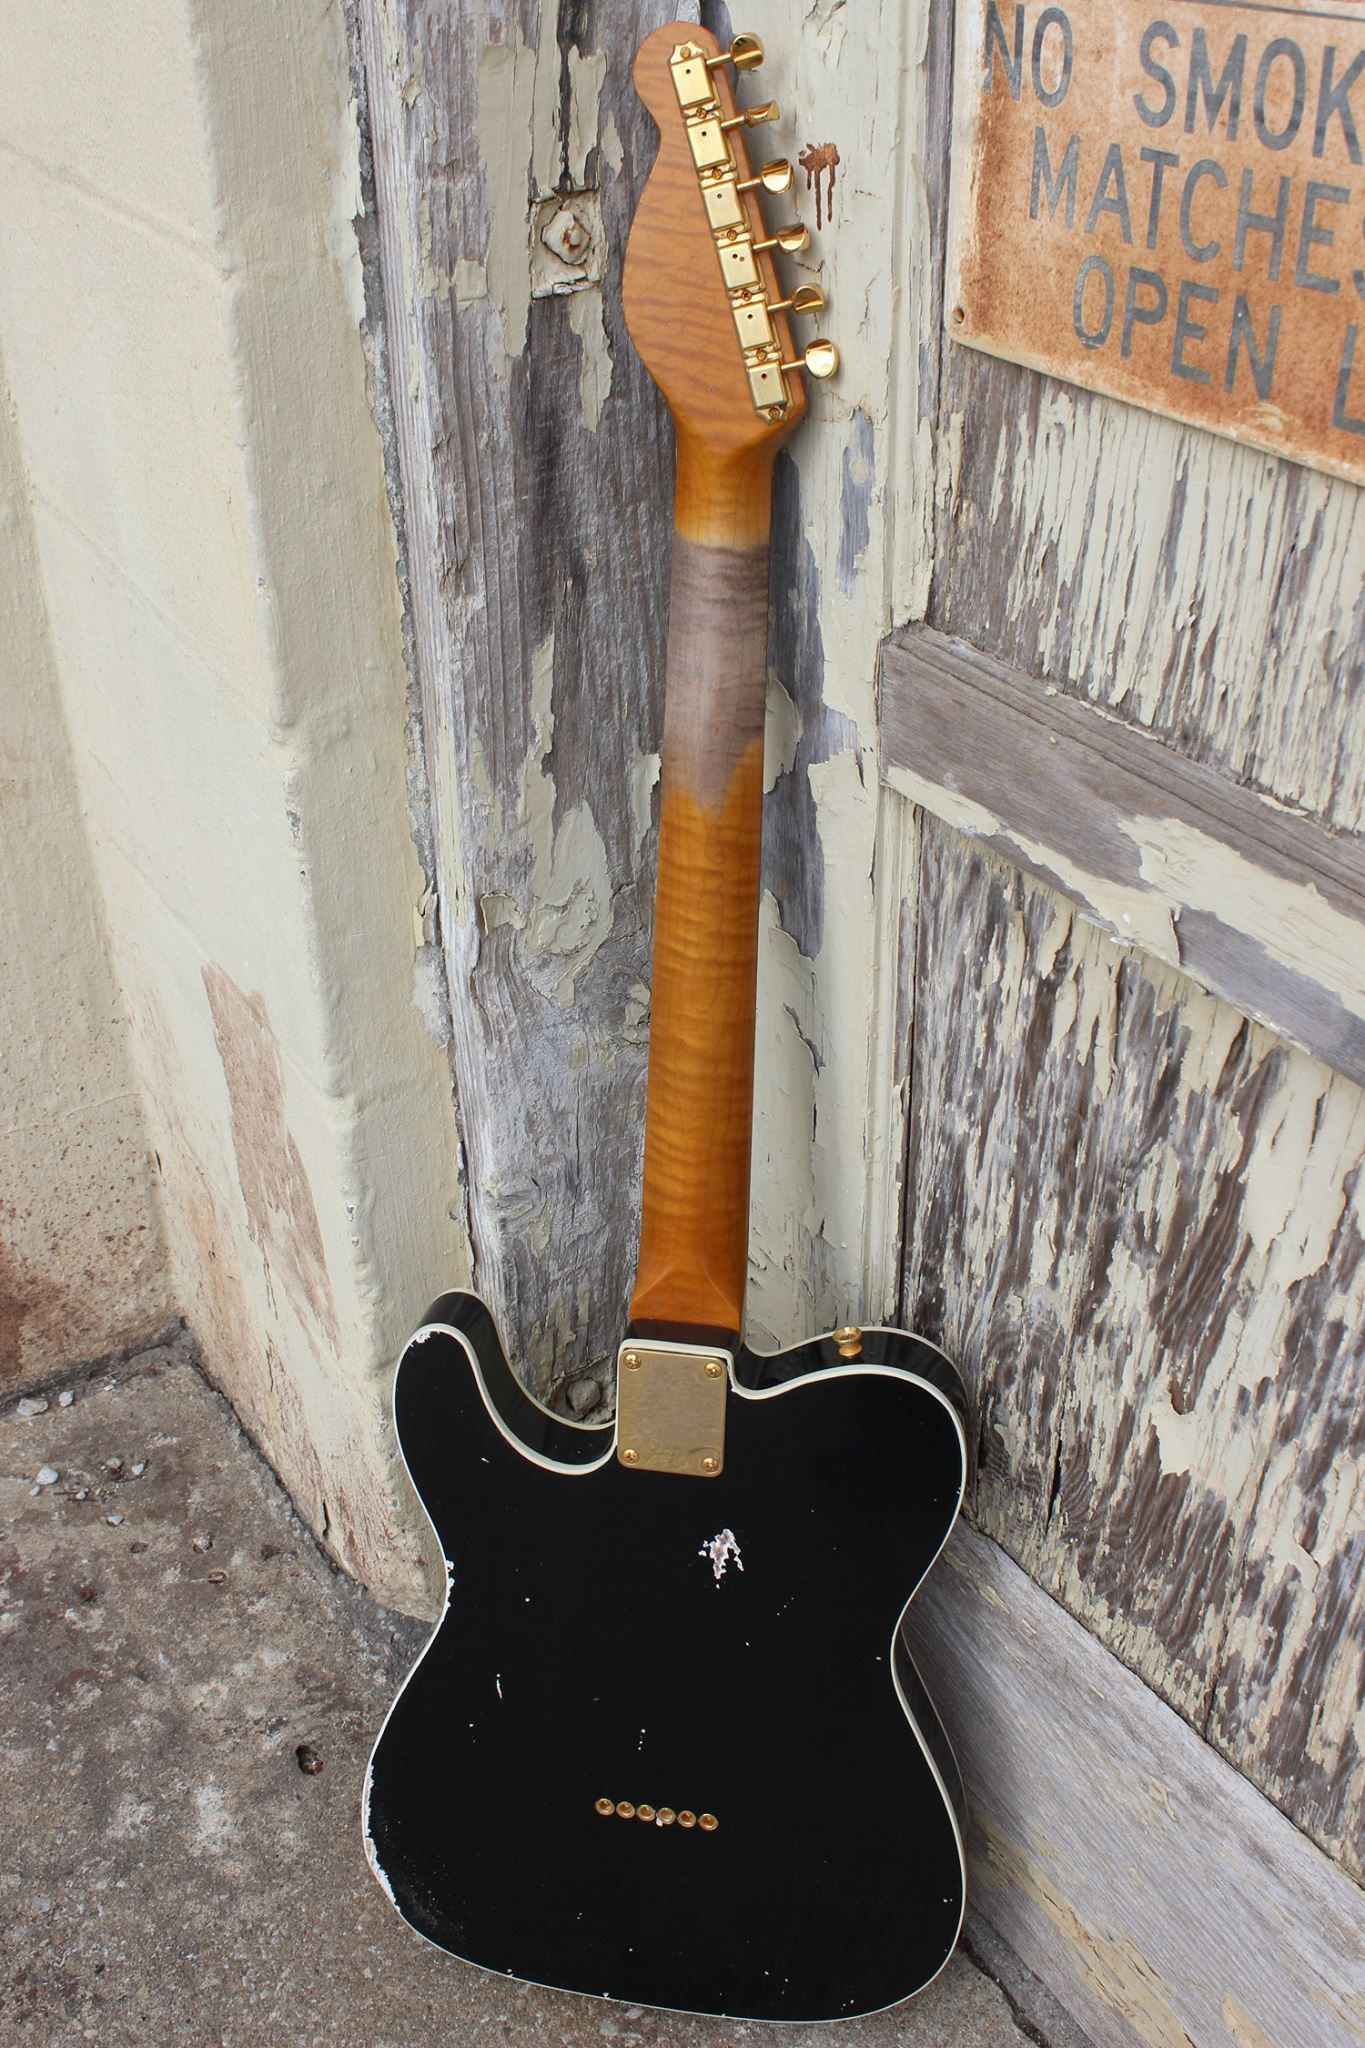 Pin By Ricci Peyroux On Mjt Guitars In 2019 Guitar